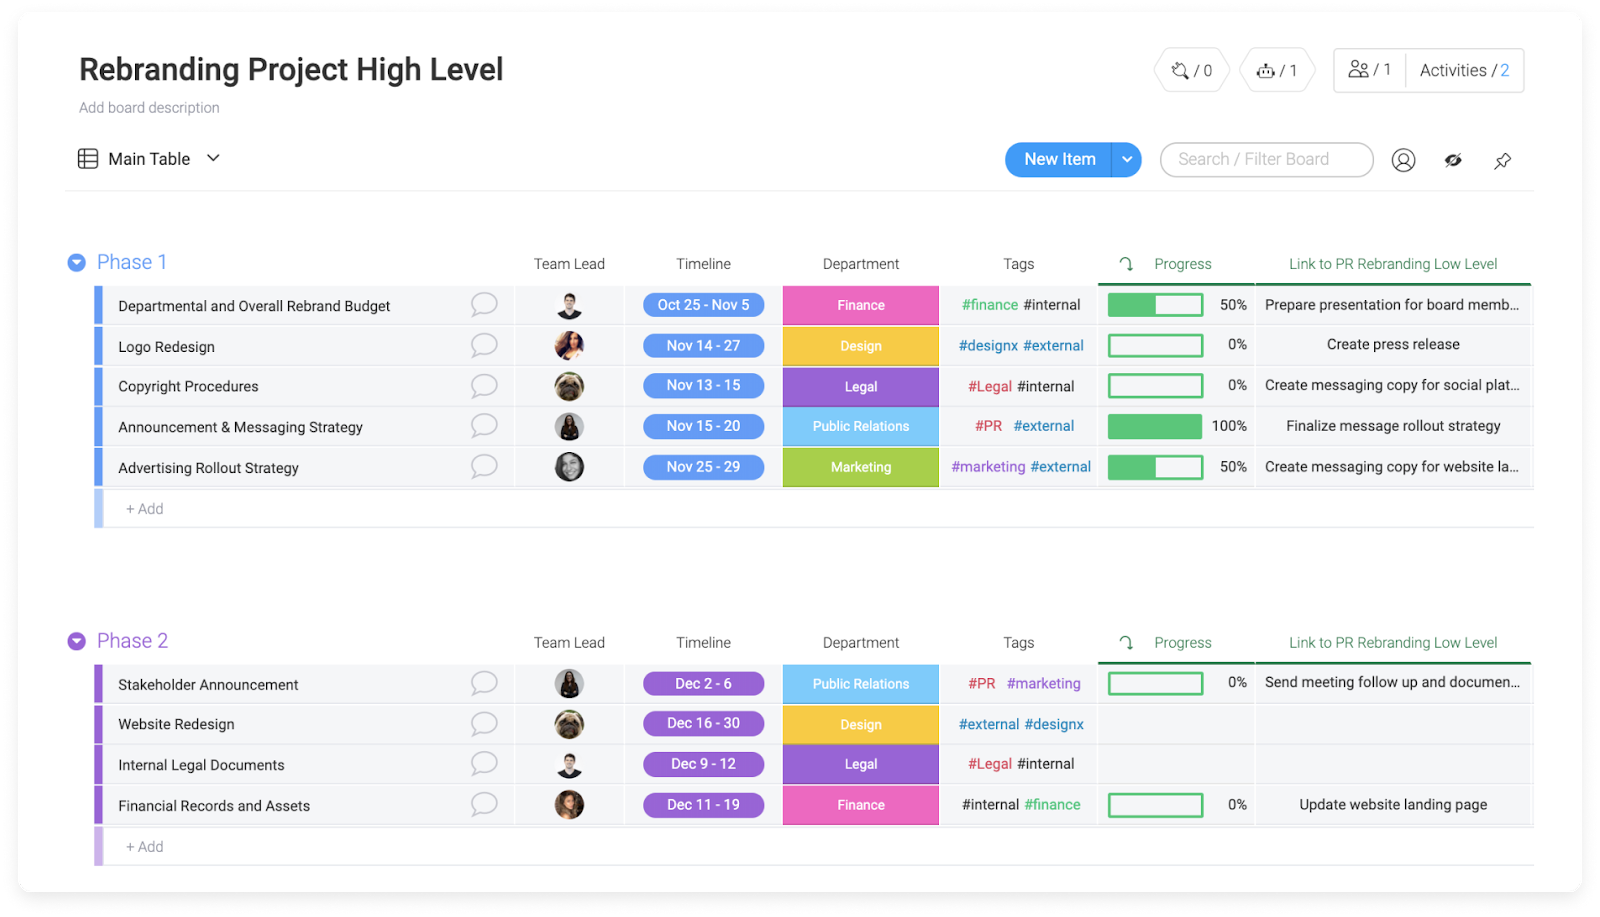 monday.com allows users to view a high-level board